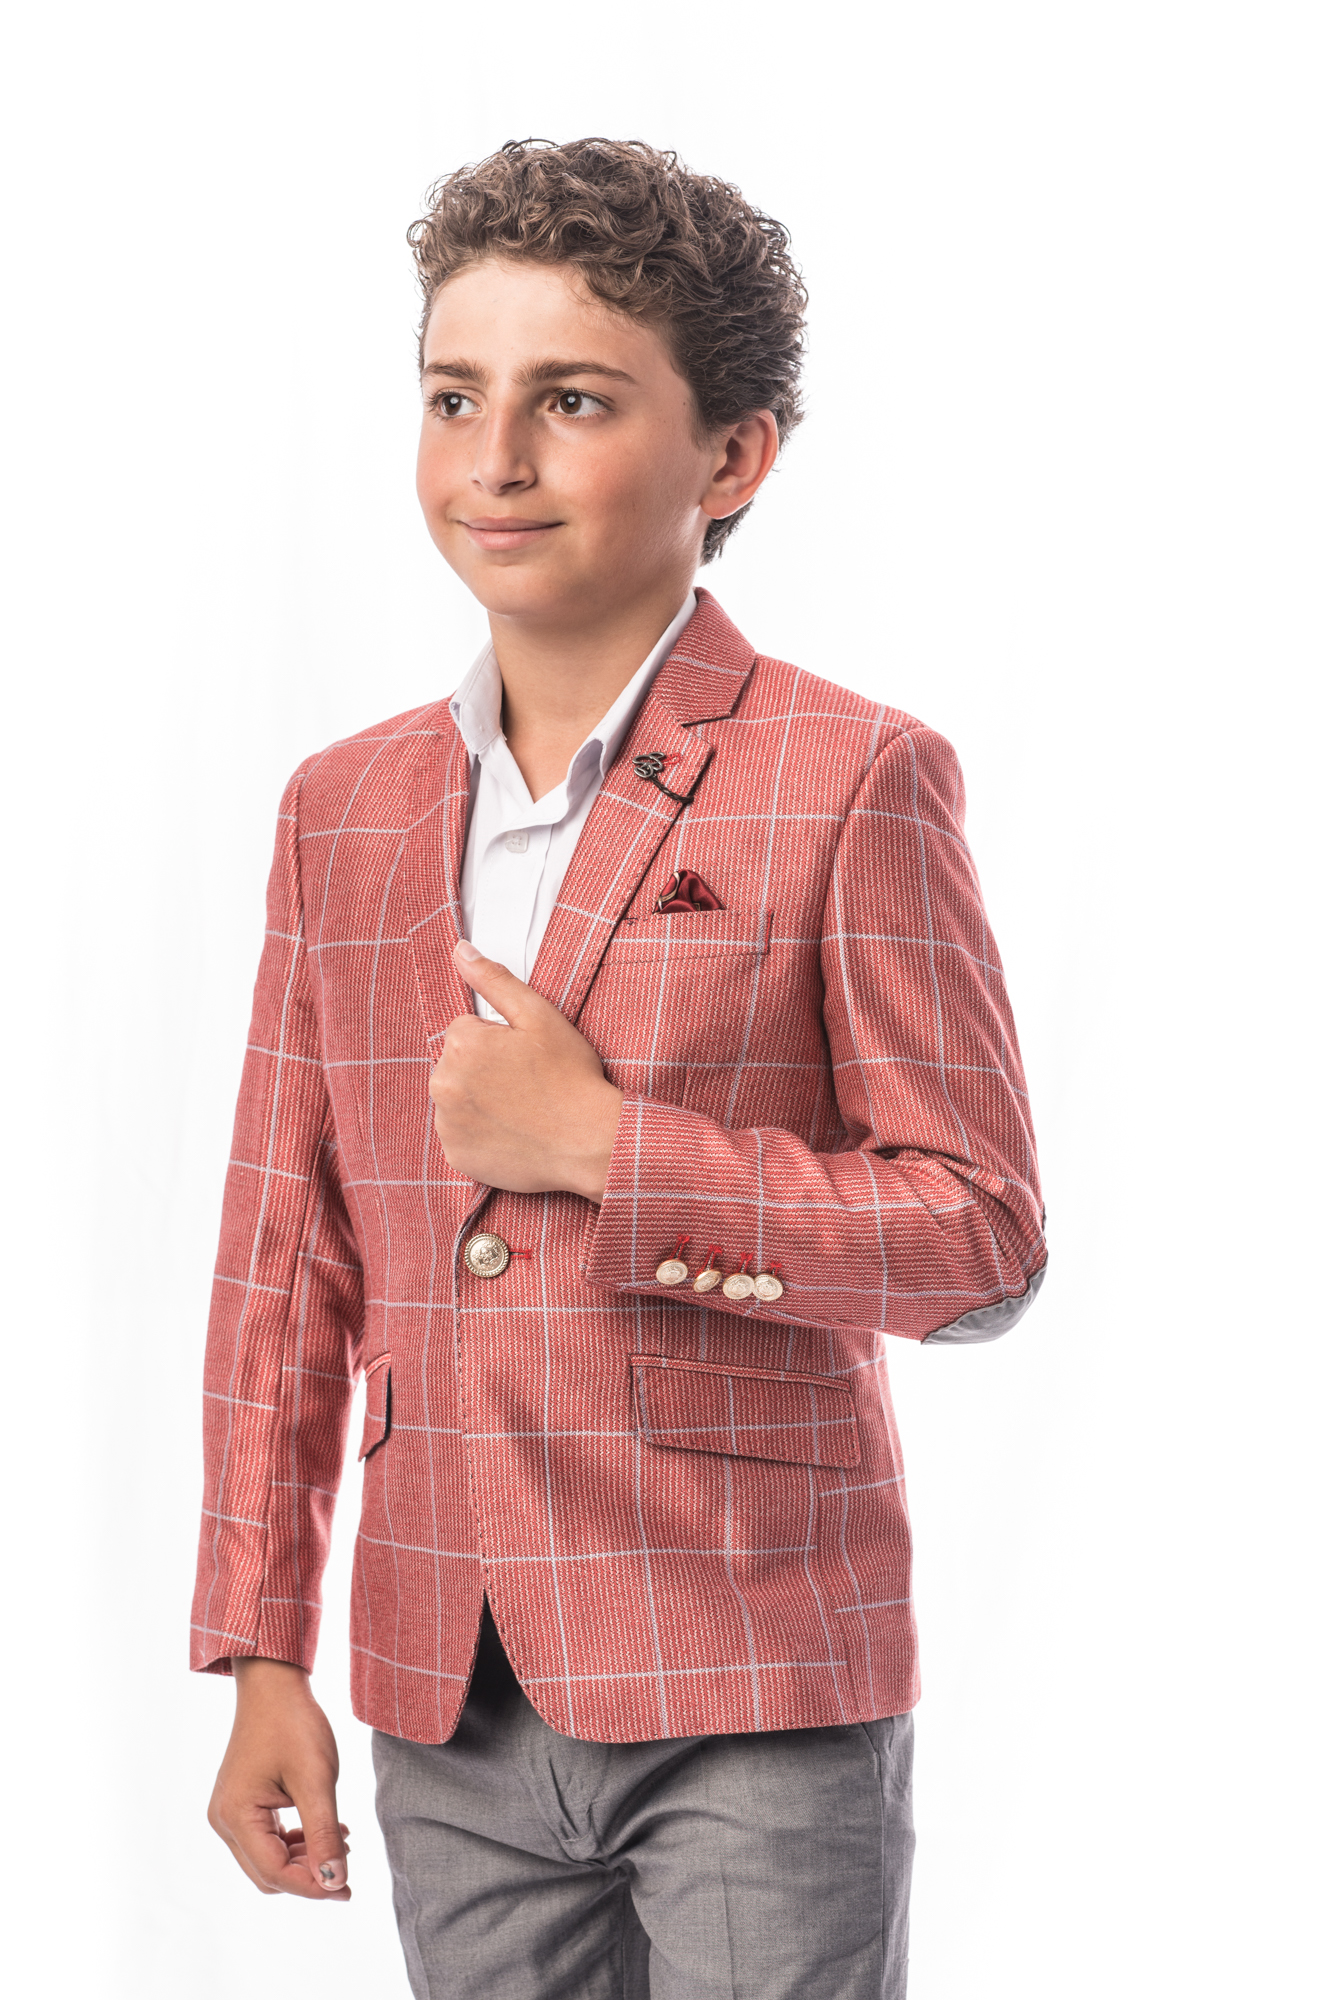 Shop for men's Sport Coats - All online at Men's Wearhouse. Browse the latest Sport Coats styles & selection for men from top brands & designers from the leader in men's apparel. Dinner Jackets Casual Coats Boys Sport Coats Custom Clothing FIT. Slim Fit Classic Fit Modern Fit Extreme Slim Fit Portly BUY 1 GET 1 SUIT FOR $ OR 1 SPORT.